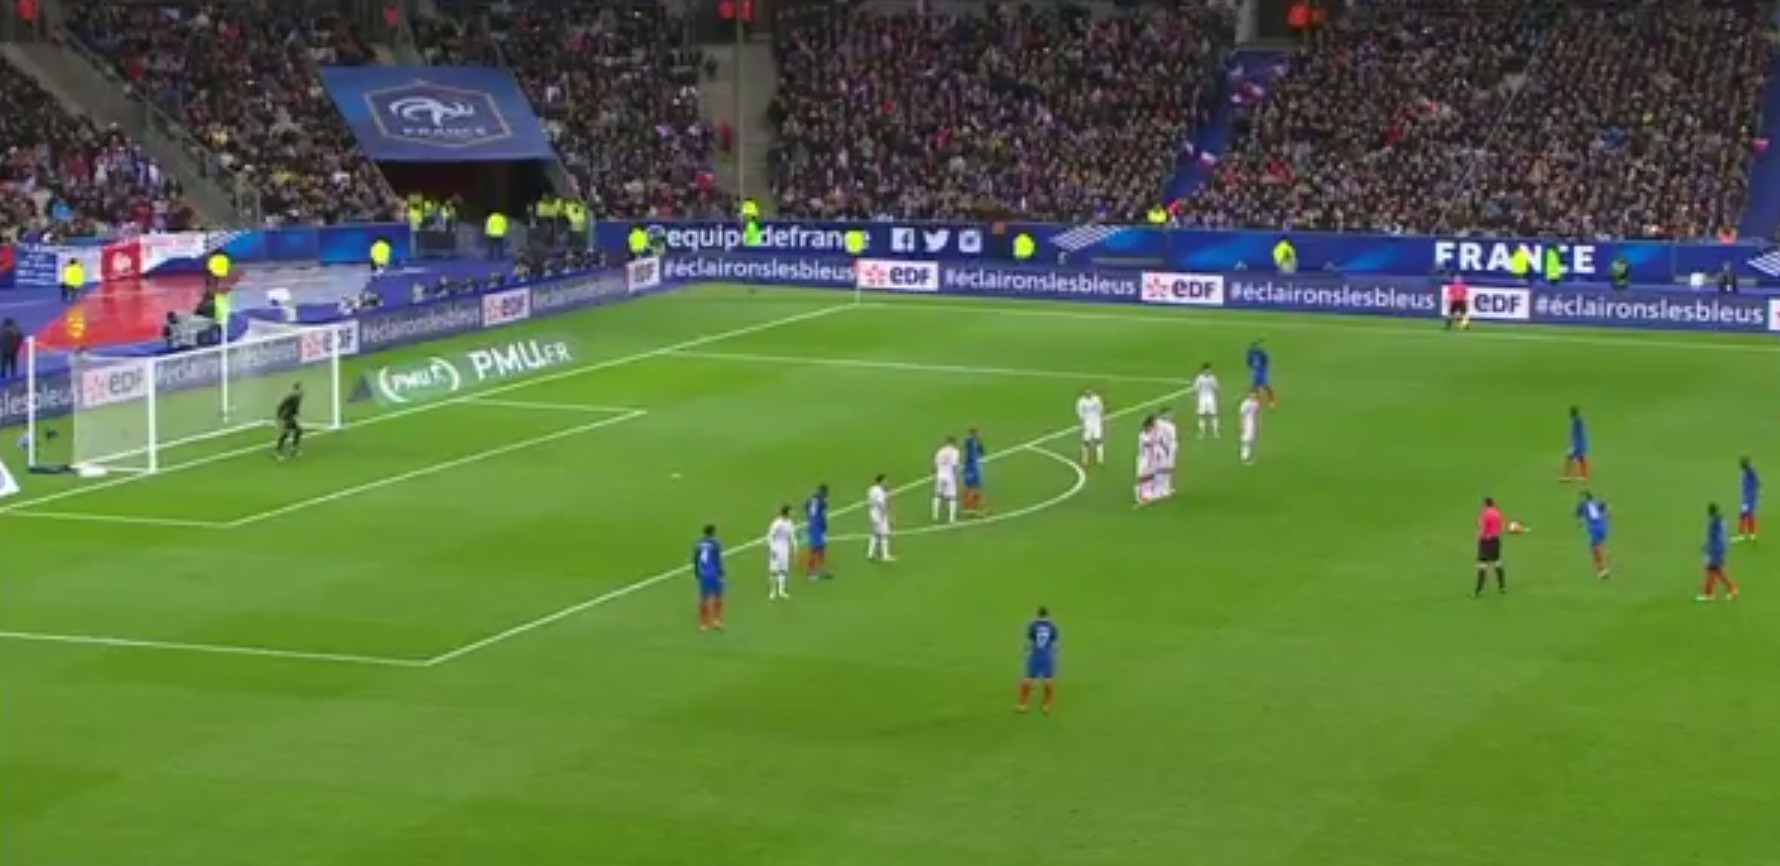 West Ham's Dimitri Payet scores incredible free-kick with first touch for France versus Russia